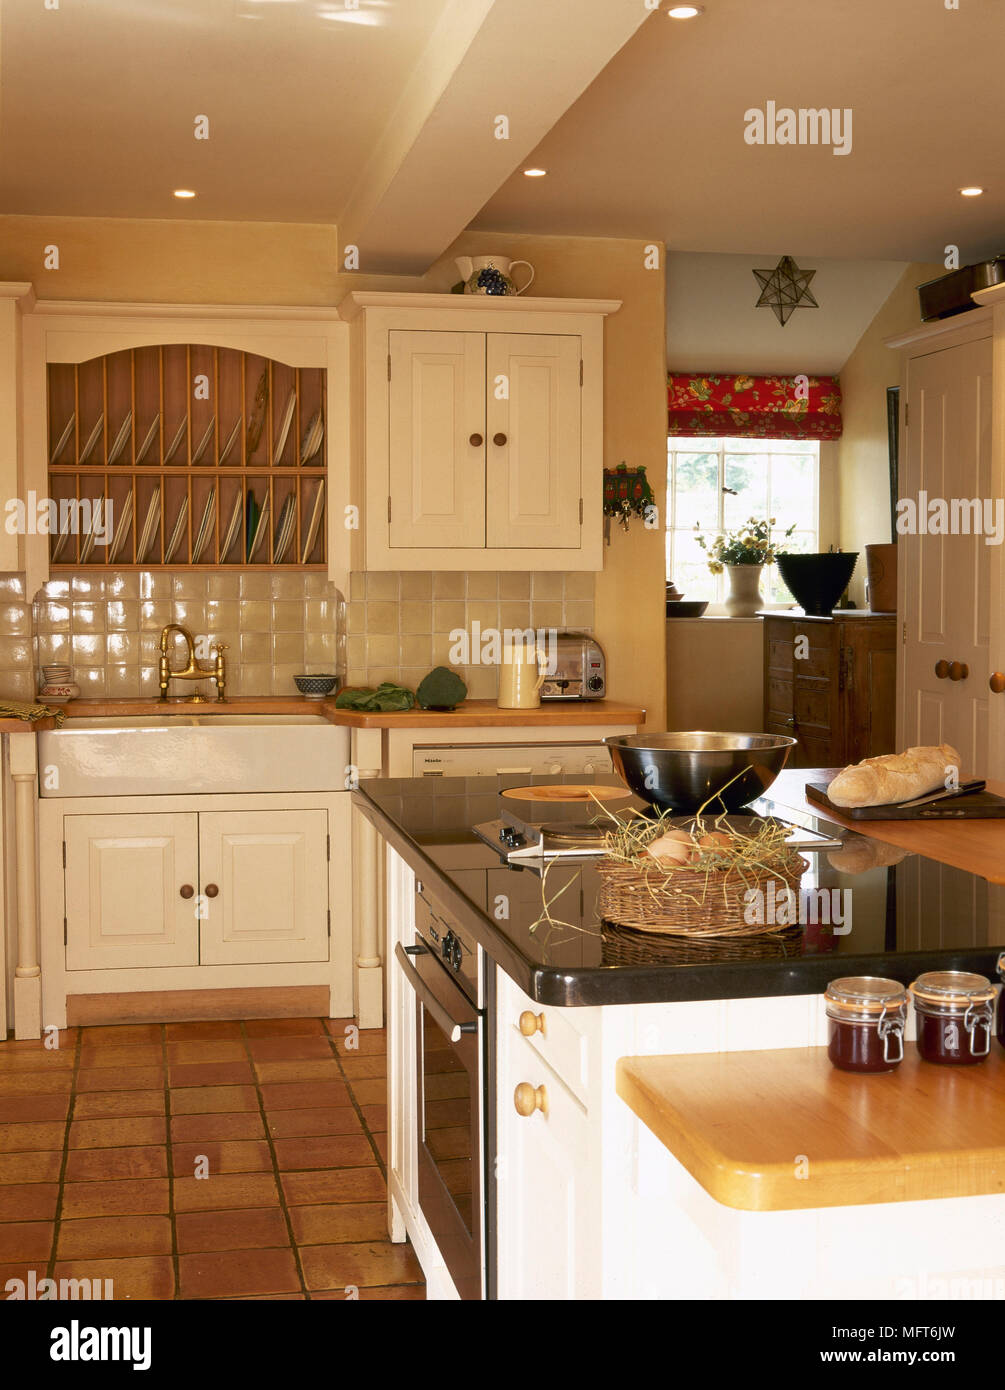 Country kitchen with tile floor, painted cabinets, apron sink, central island, and recessed lighting. - Stock Image